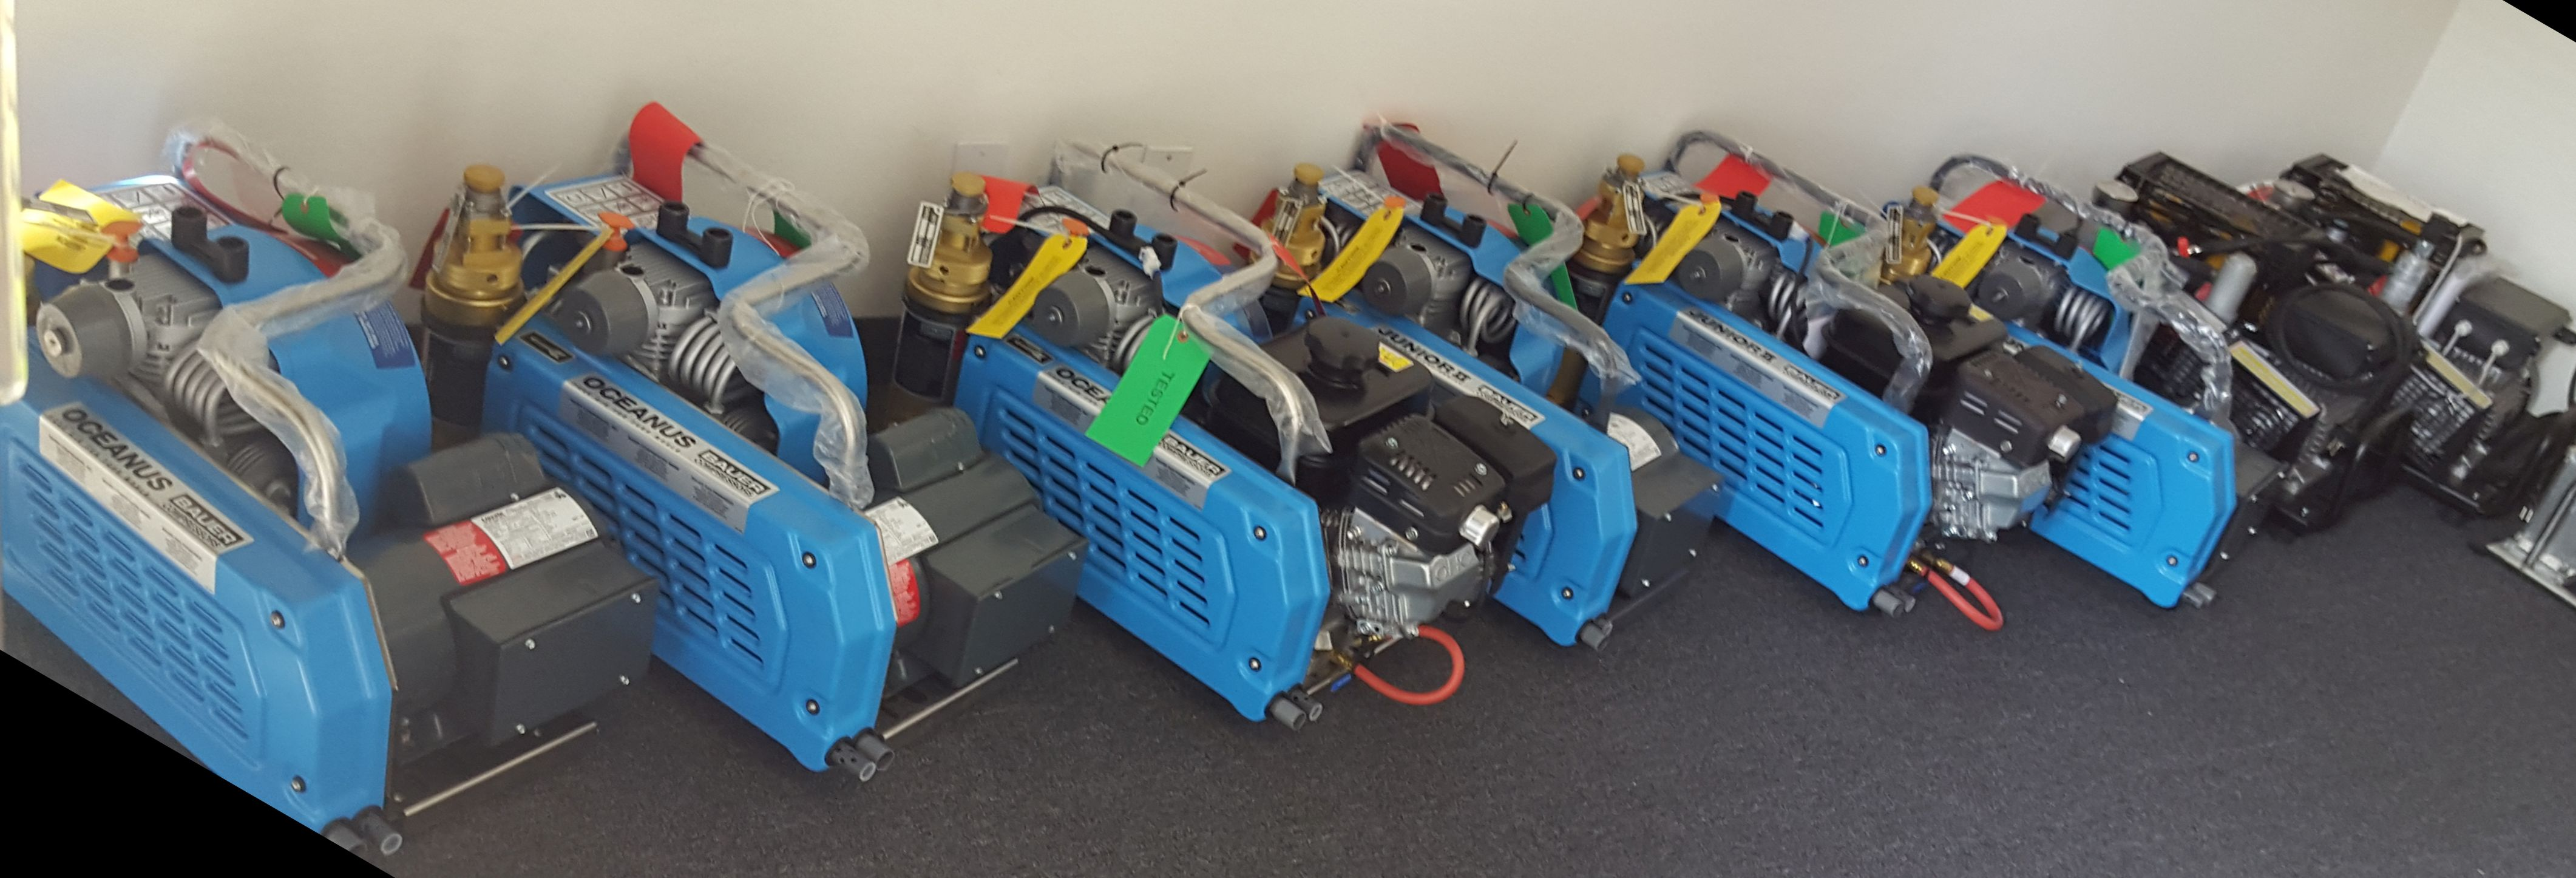 Bauer SCUBA Dive Compressors Available in Gas or Electric